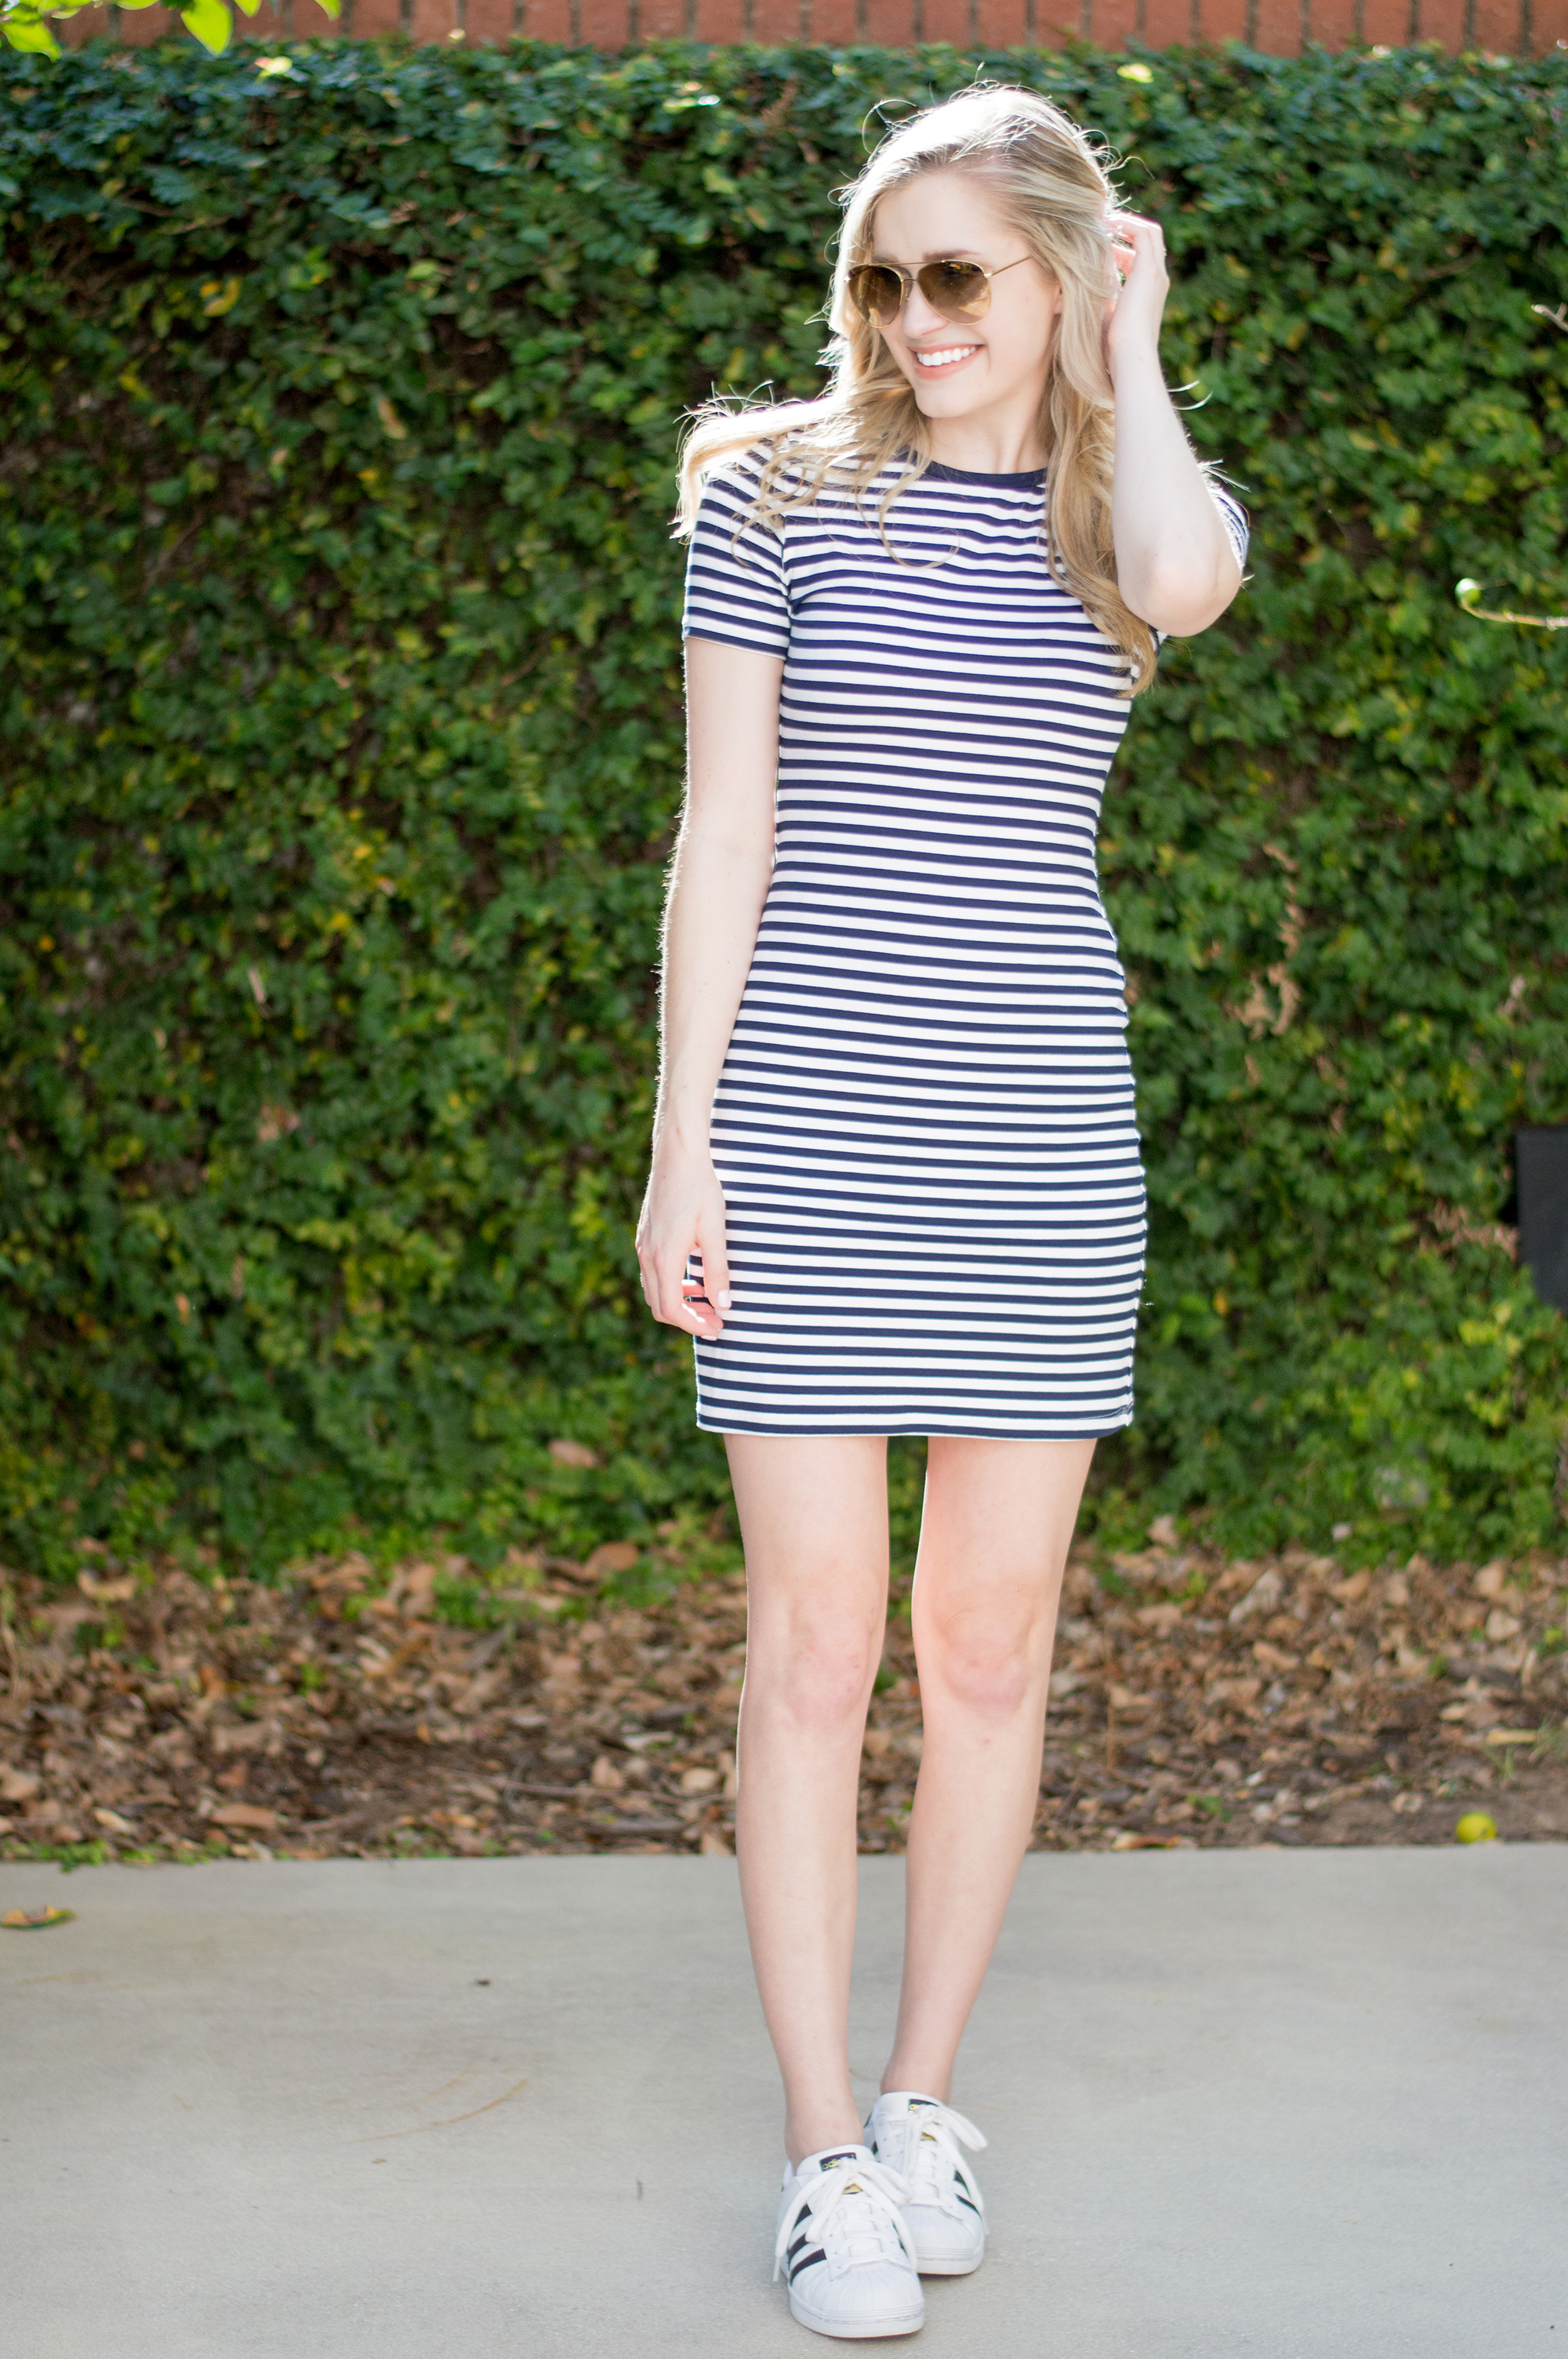 styelled-blog-elle-elisabeth-jane-hudson-stripes-striped-dress-adidas-superstar-efitz-bluetooth-headphones-apple-macbook-gold-burberry-blogger-08